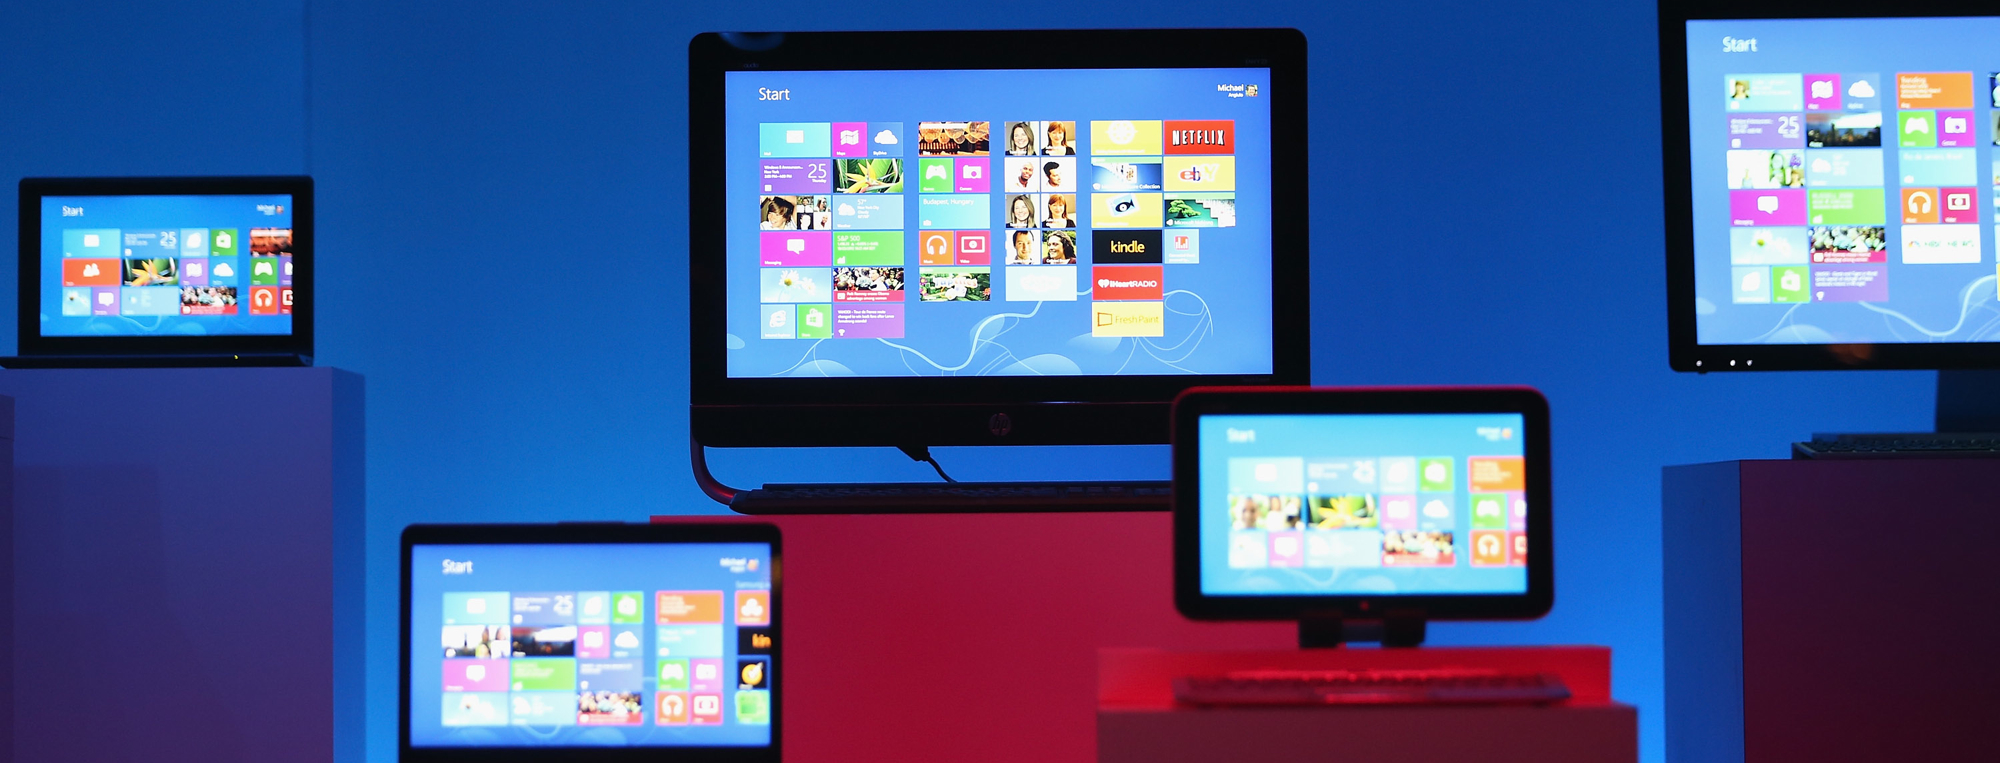 Windows 8.1 now up to 3.95% market share as it passes Vista, Windows 8 falls to 6.63%